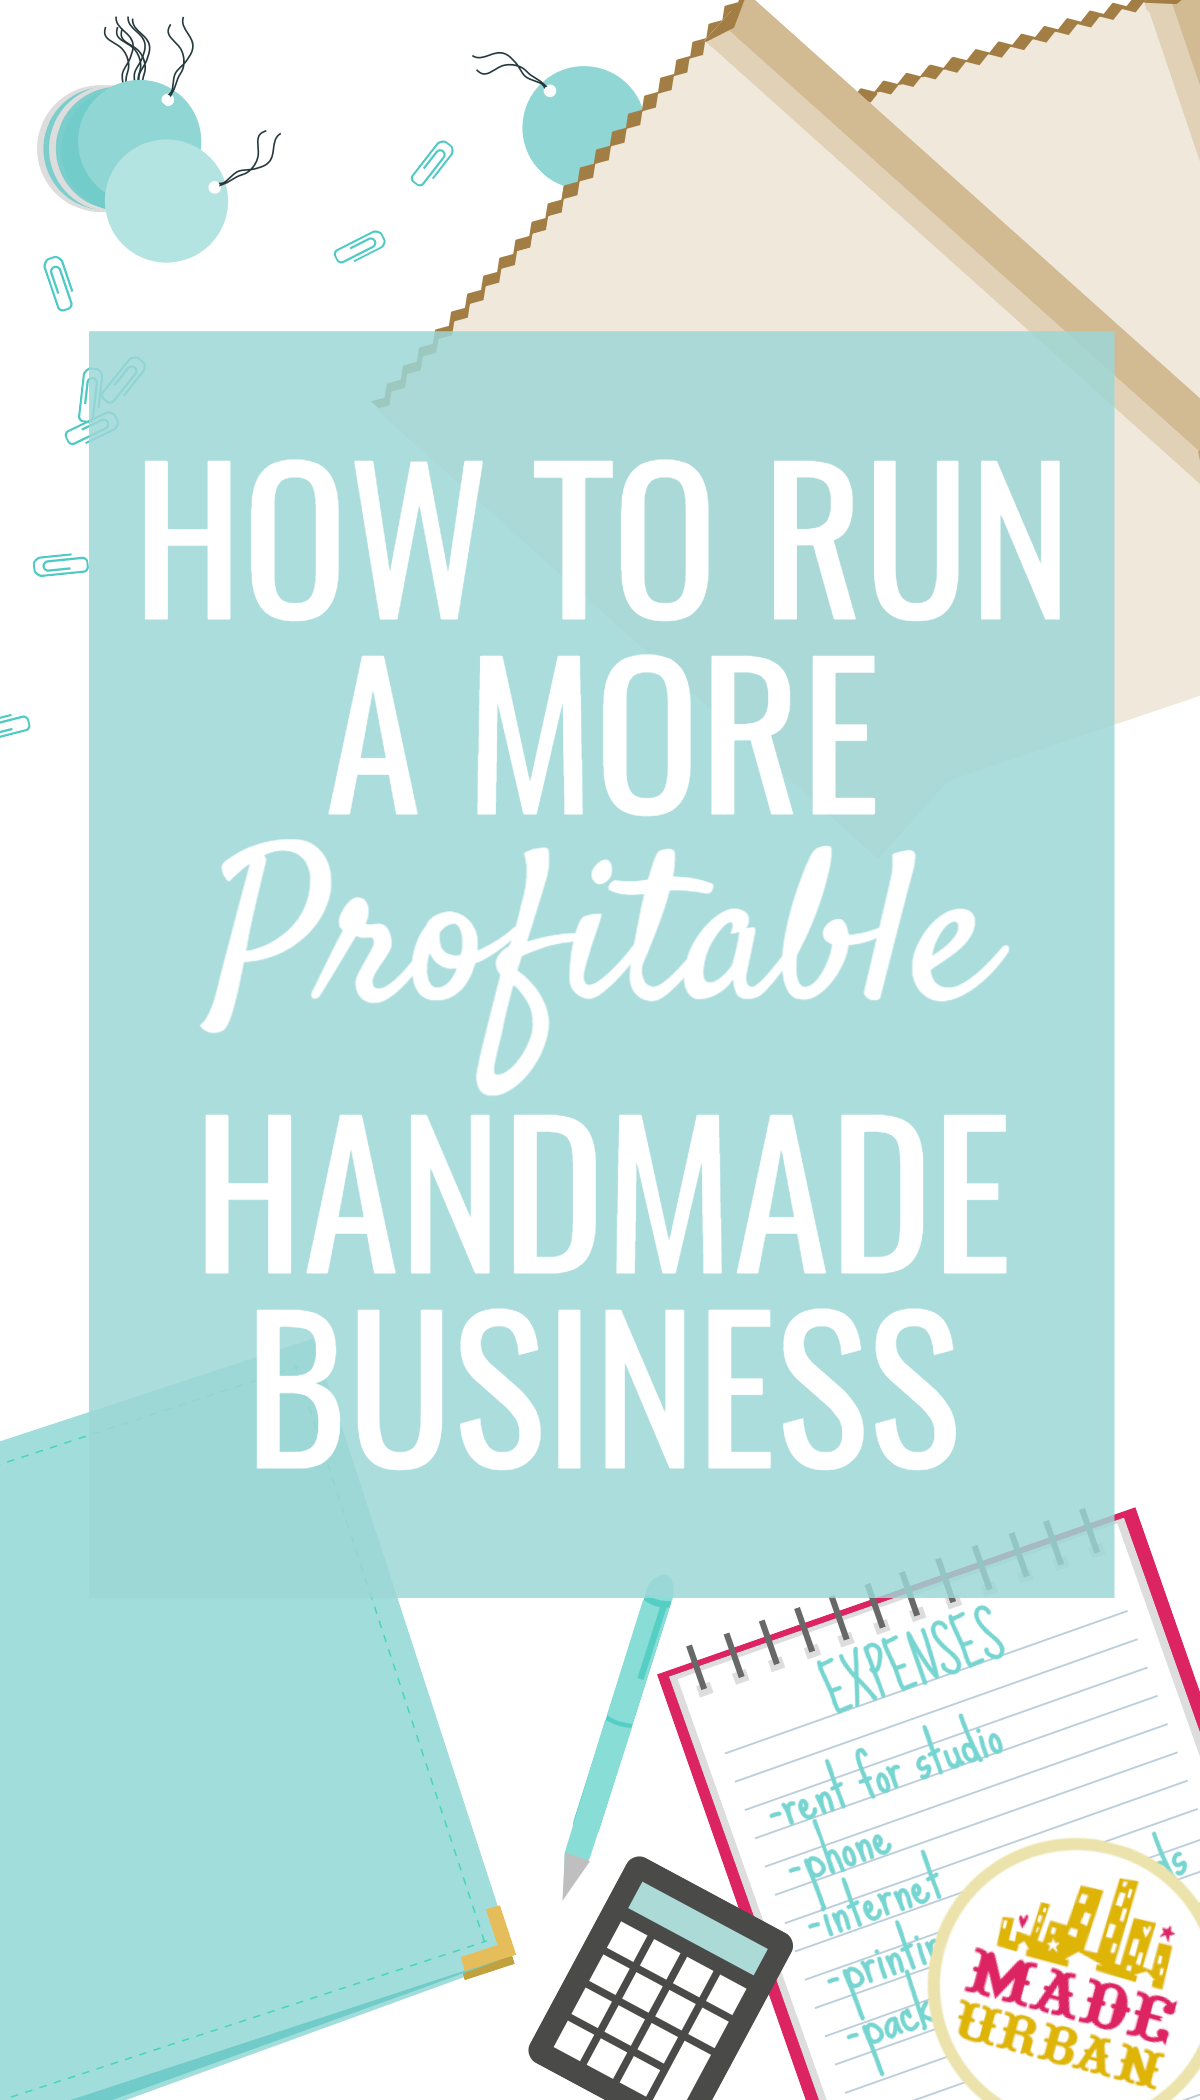 How to run a more profitable handmade business